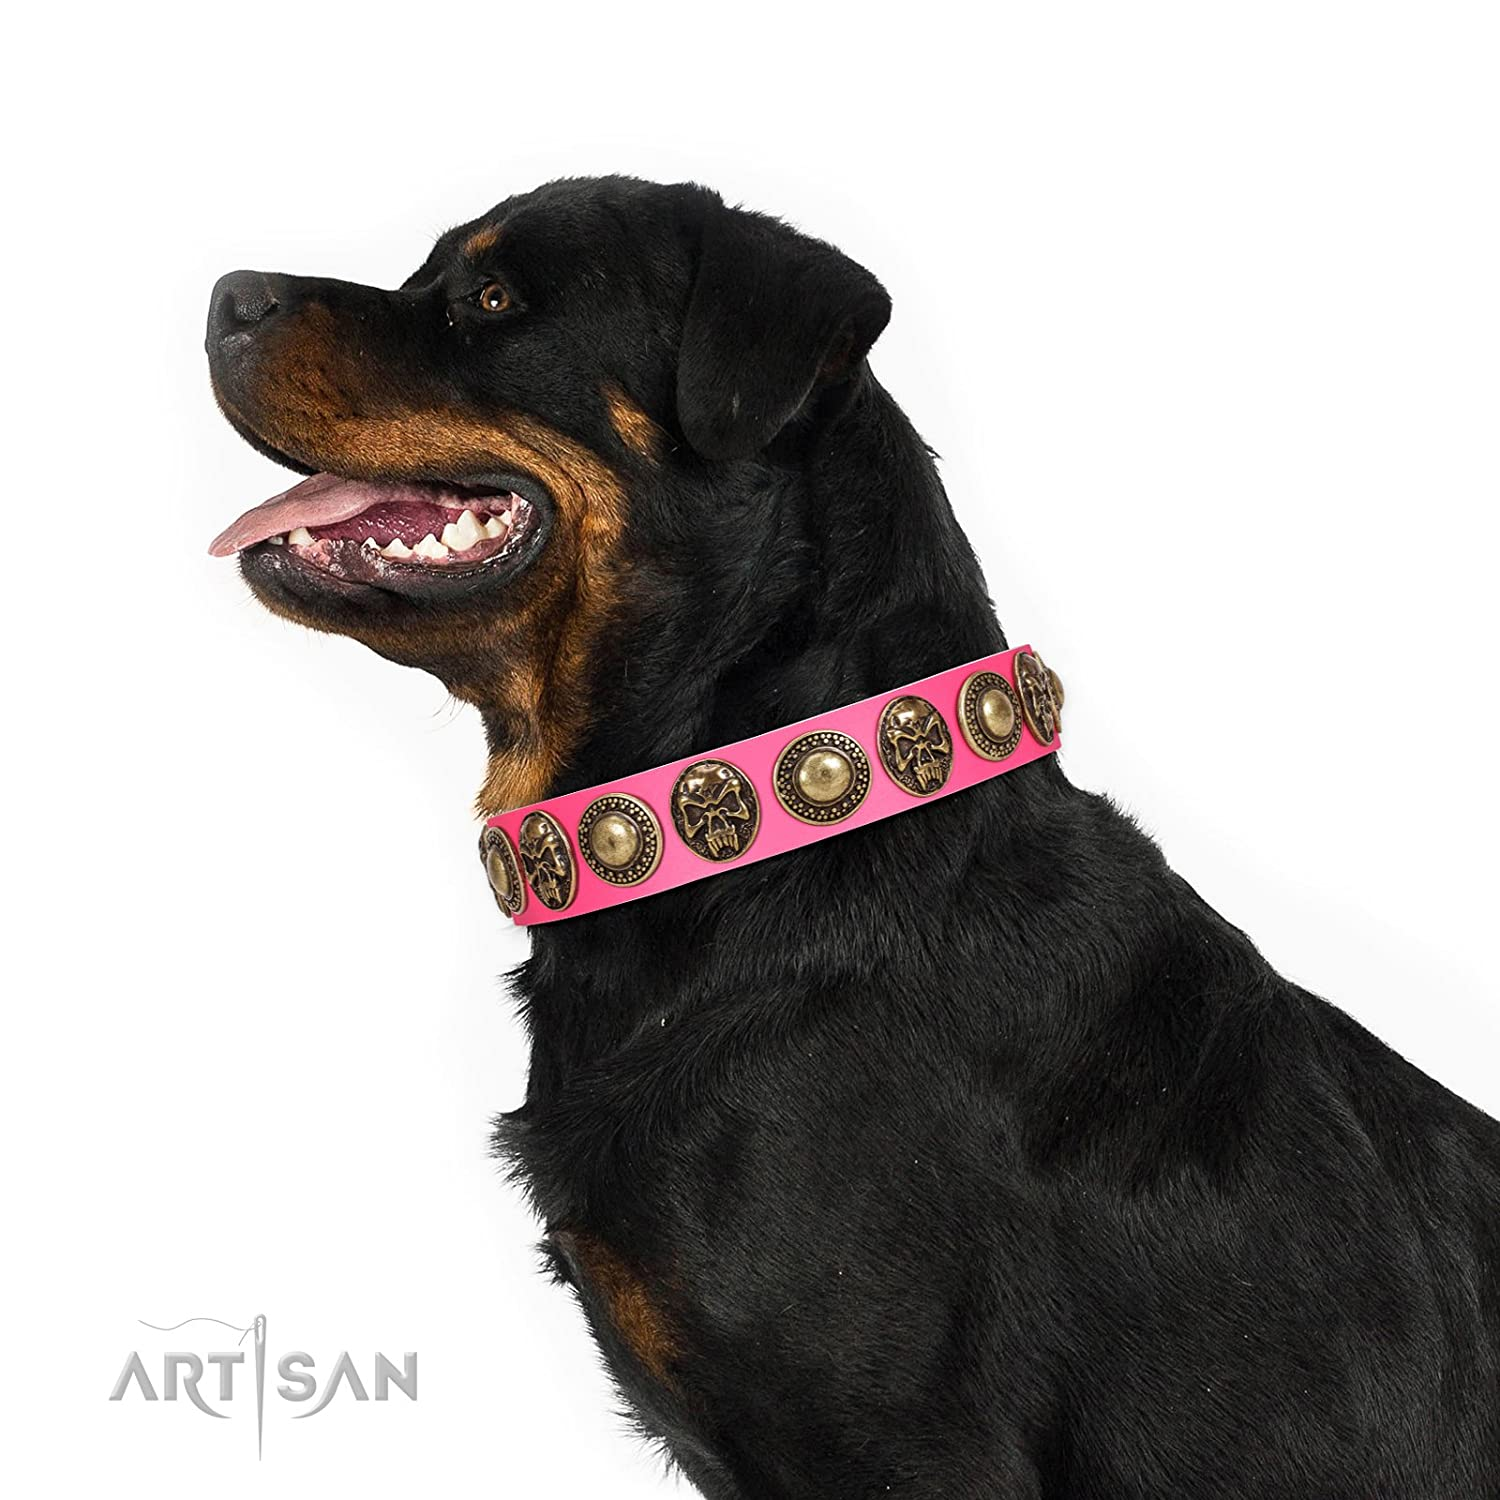 Fits for 31 inch (78cm) dog's neck size 31 inch FDT Artisan Pink Leather Dog Collar with Elegant Conchos and Medallions with Skulls Two Extremes Gift Box Included